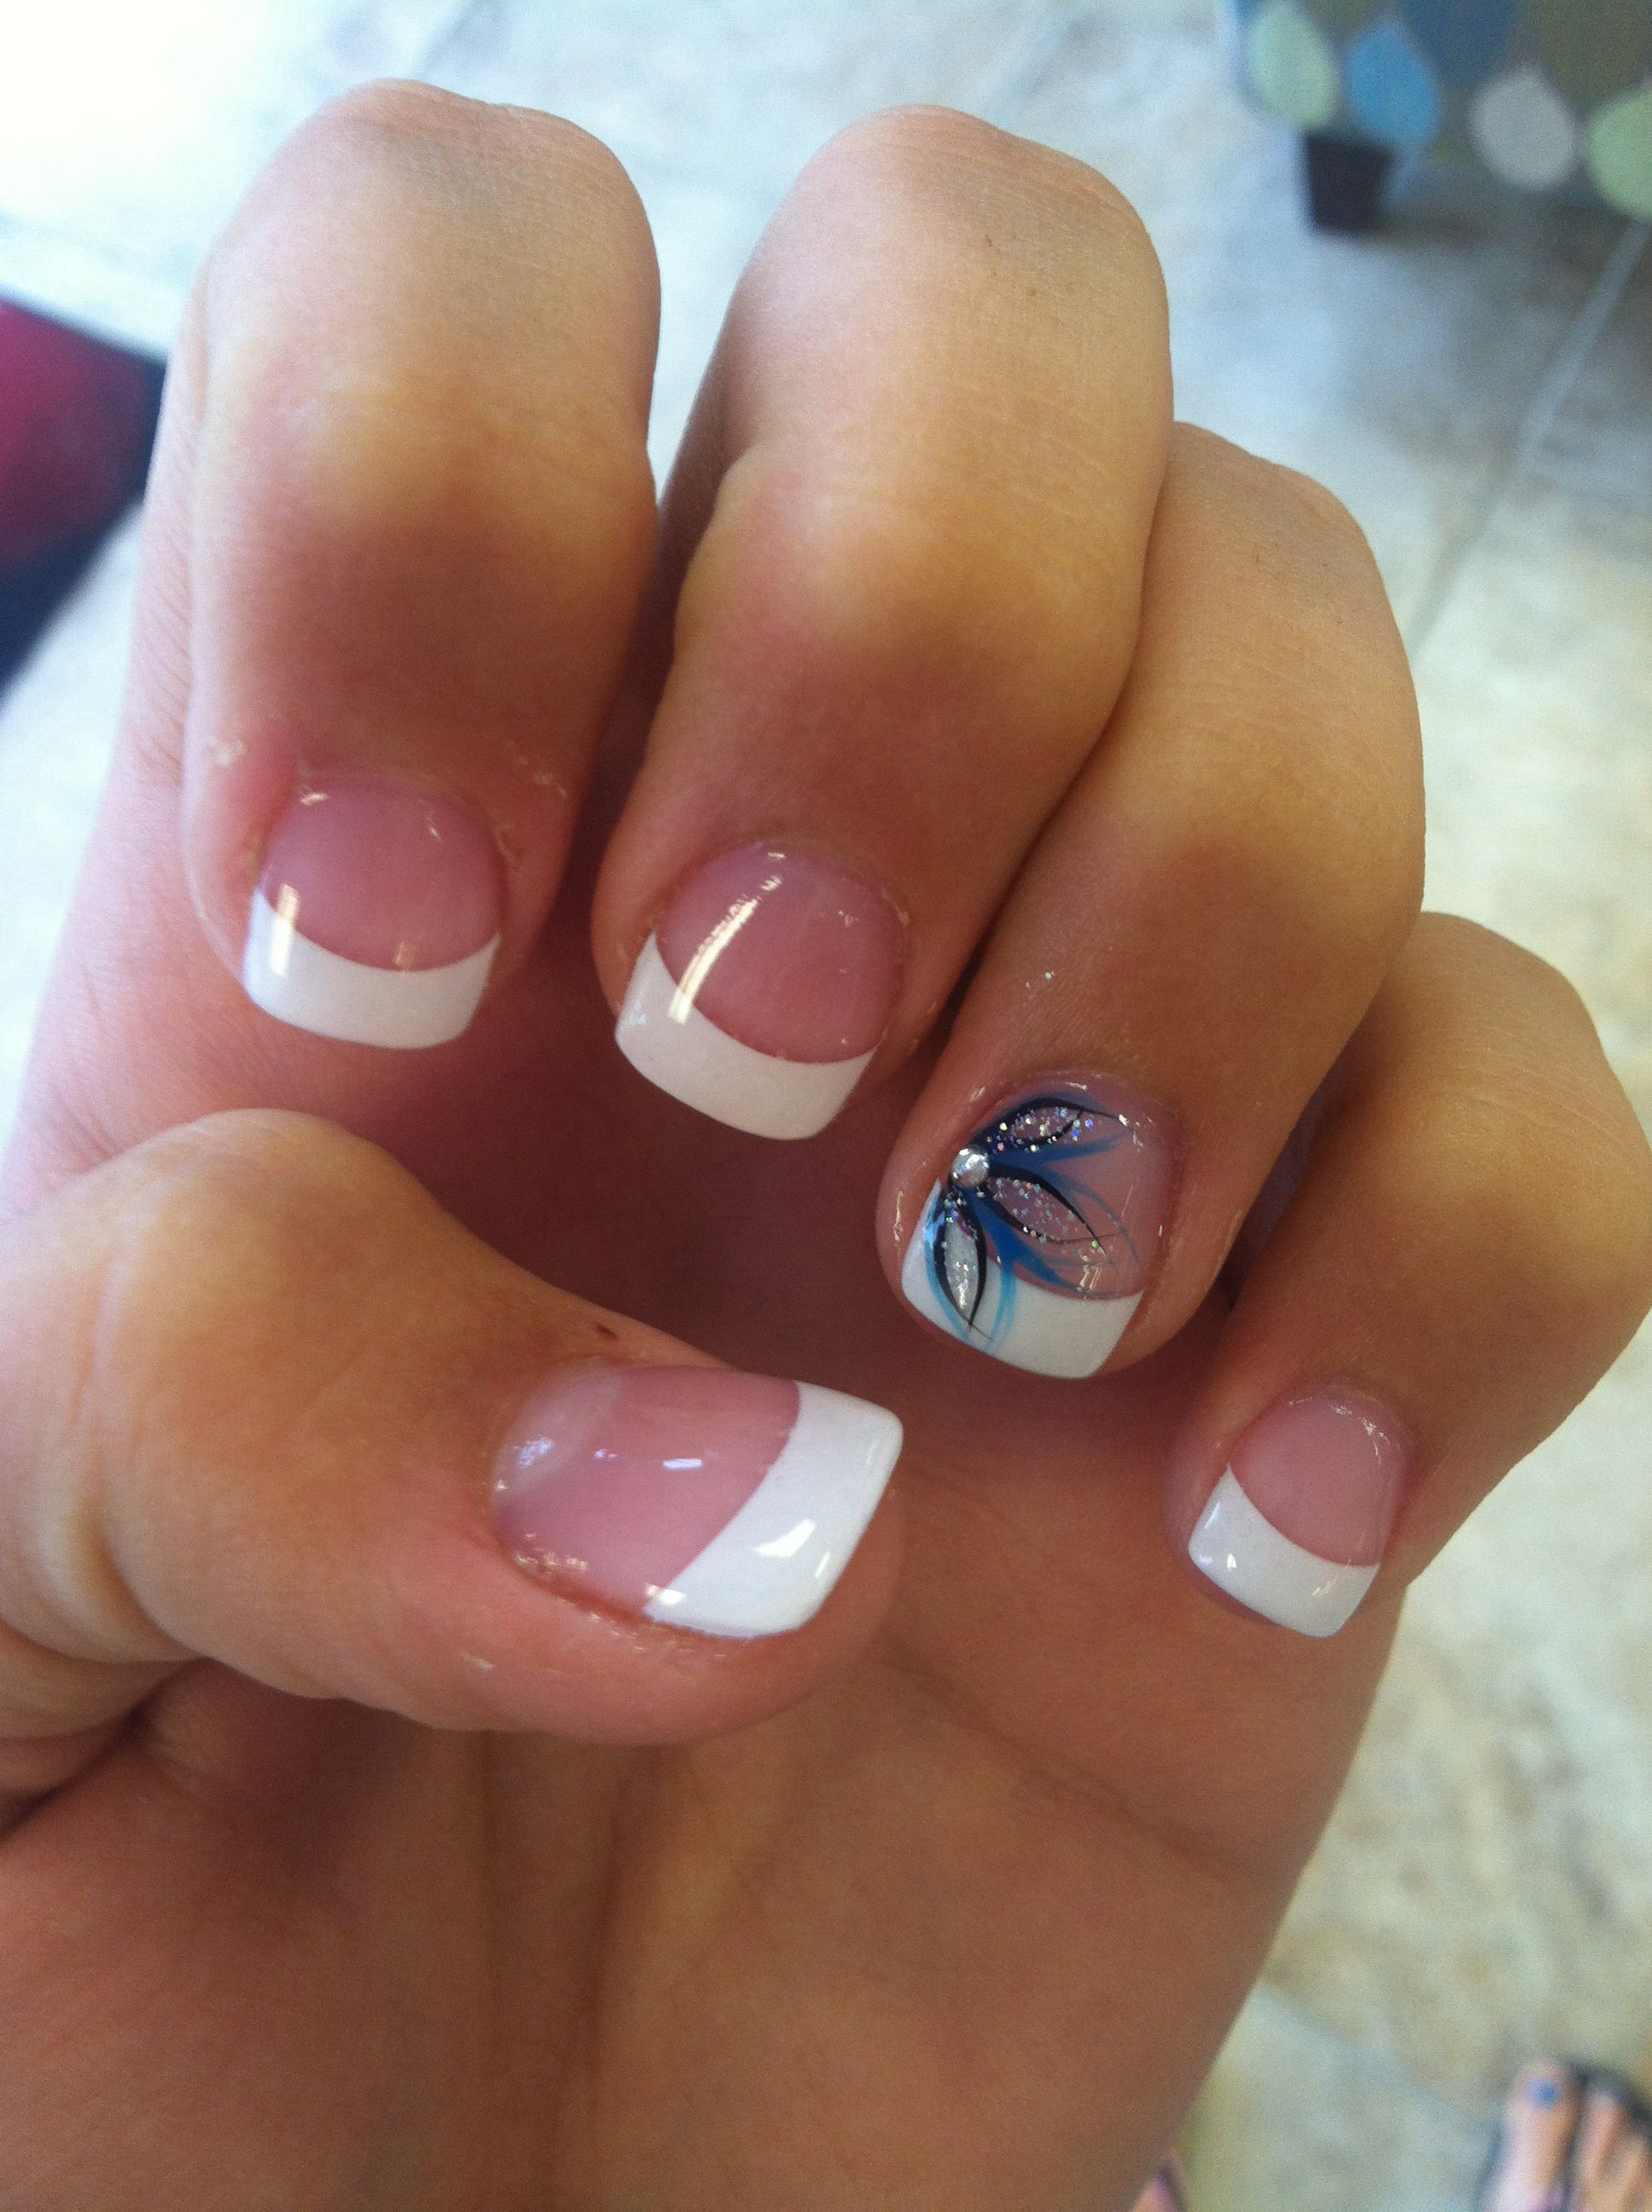 Prom nails! | cute stuff | Pinterest | Prom nails, Prom and Makeup